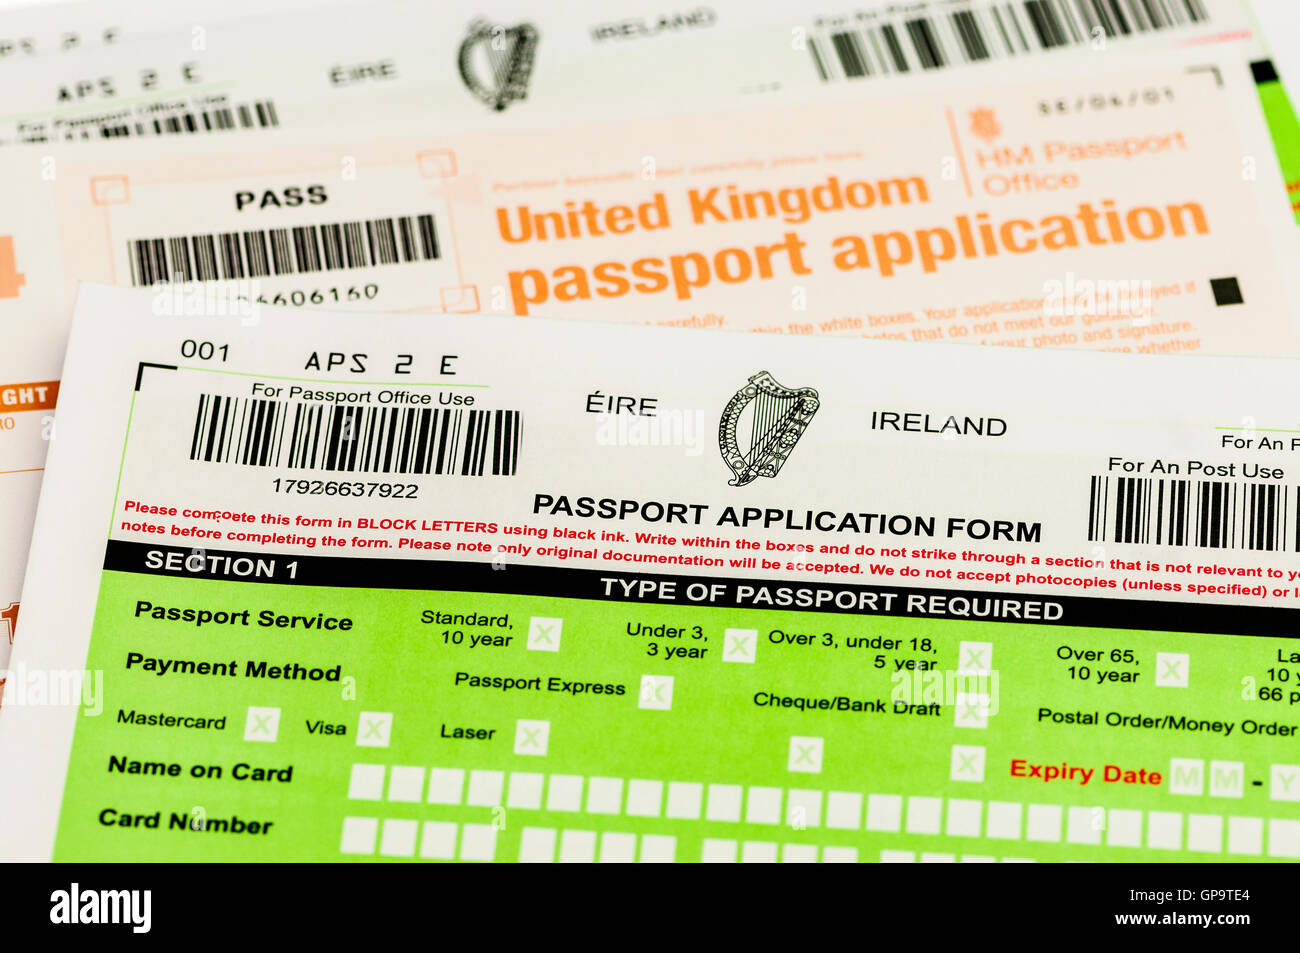 Passport application forms for both republic of ireland eire passport application forms for both republic of ireland eire and united kingdom uk falaconquin